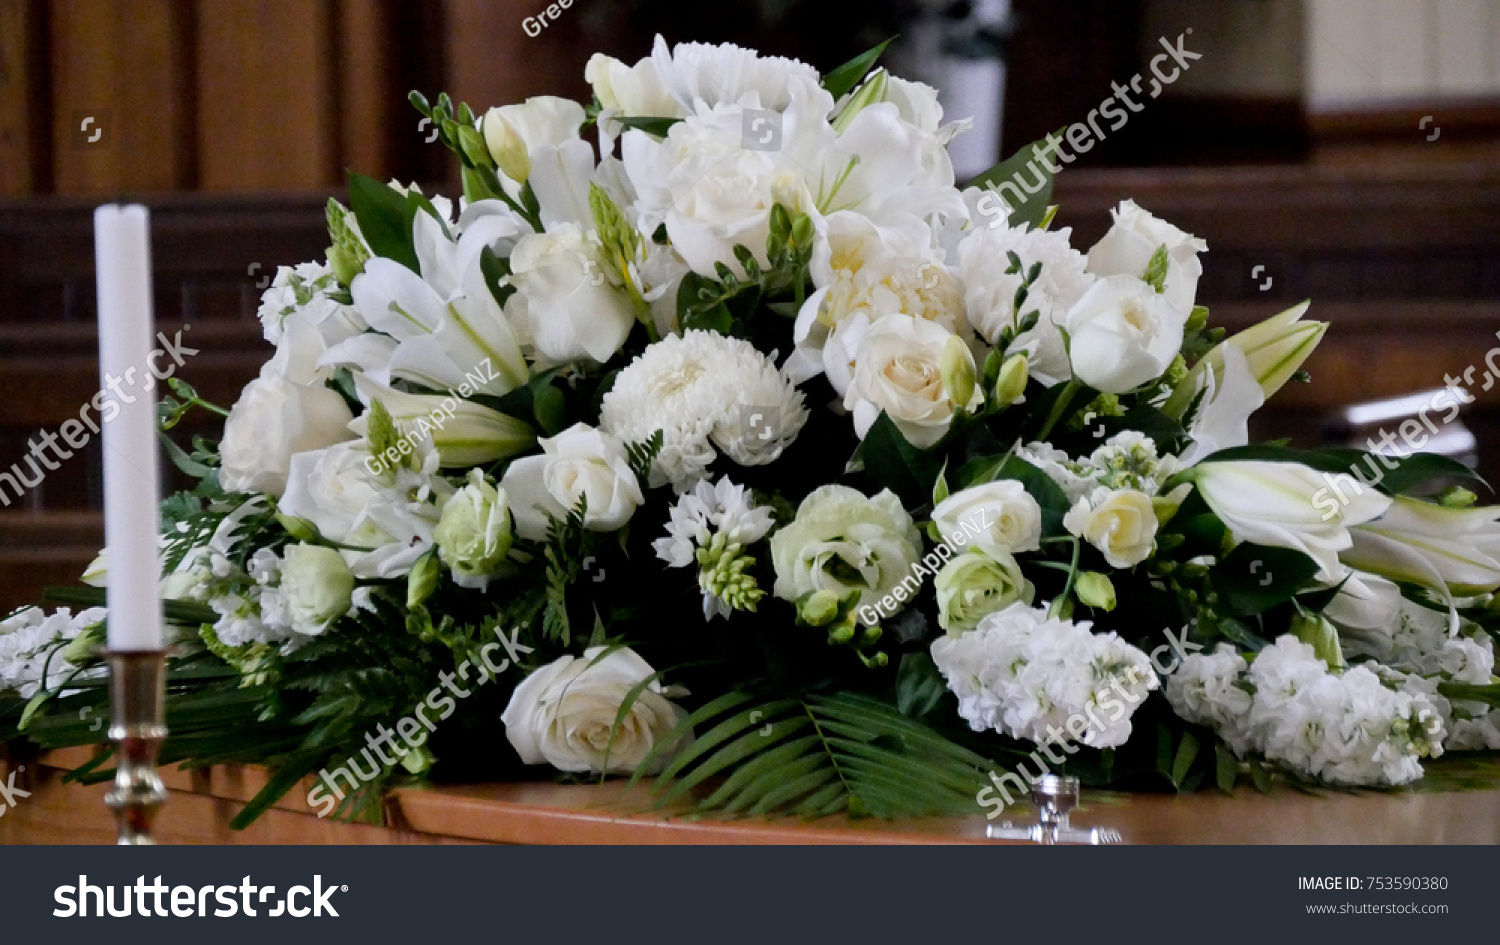 stock-photo-shot-of-flower-candle-used-for-a-funeral-753590380